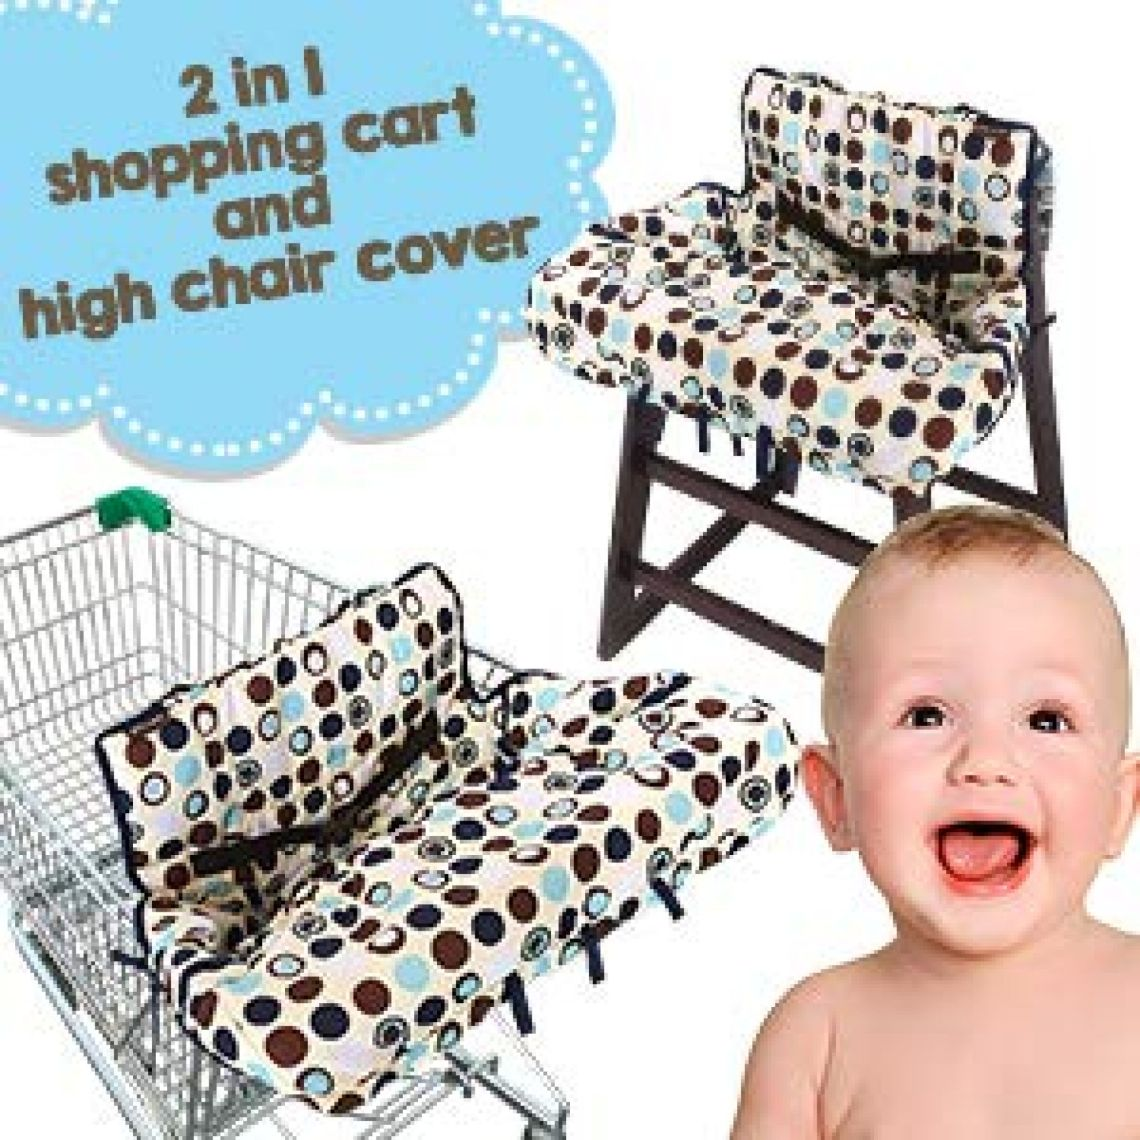 Amazon.com : Crocnfrog 2-in-1 Shopping Cart Cover | High Chair Cover for Baby | Medium : Baby